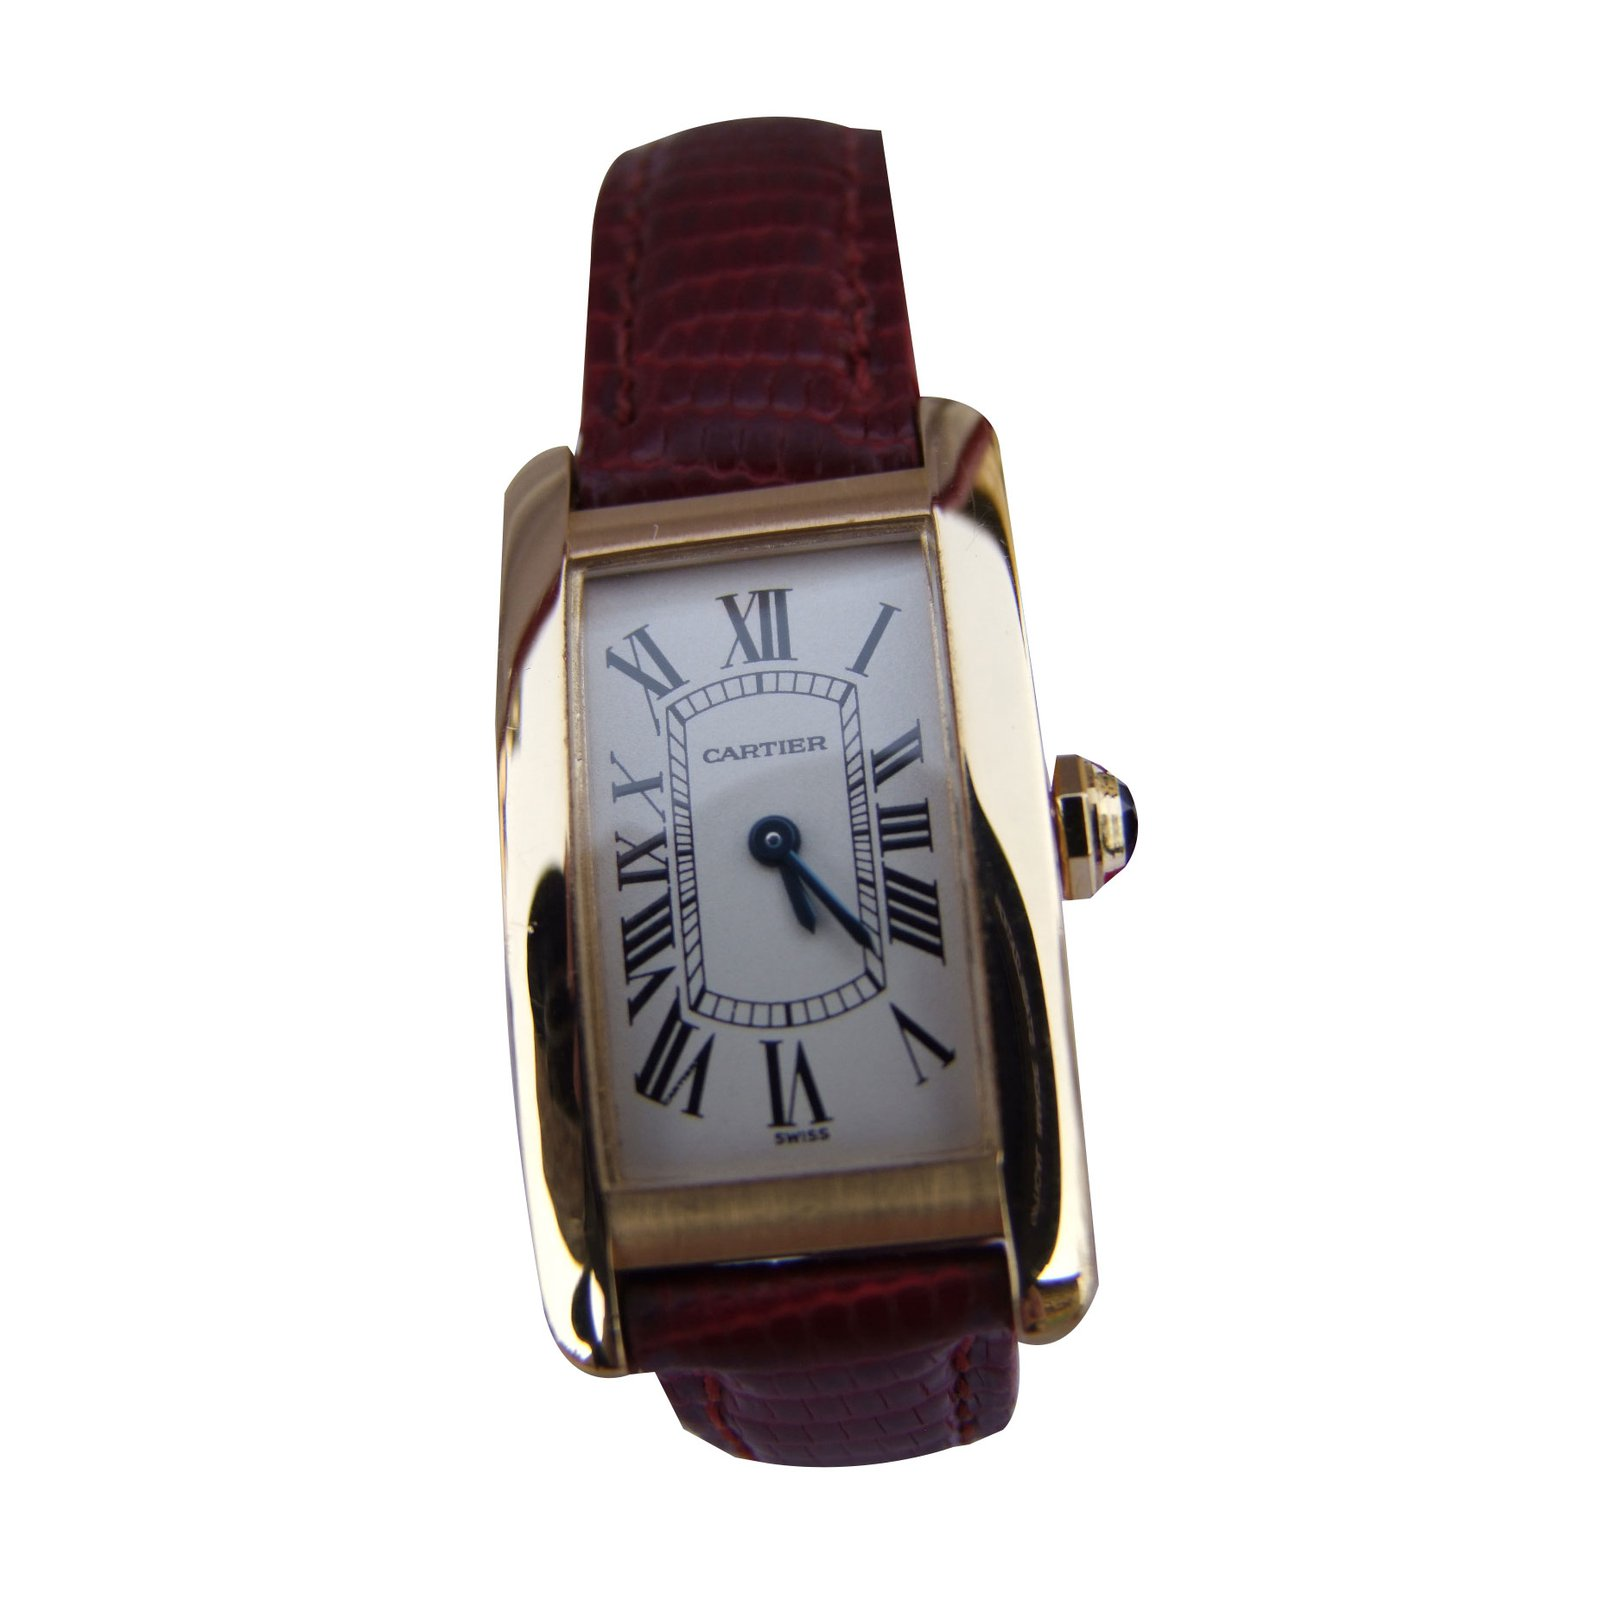 s tank guide watches gazette box watch dress quintessential cartier gentleman